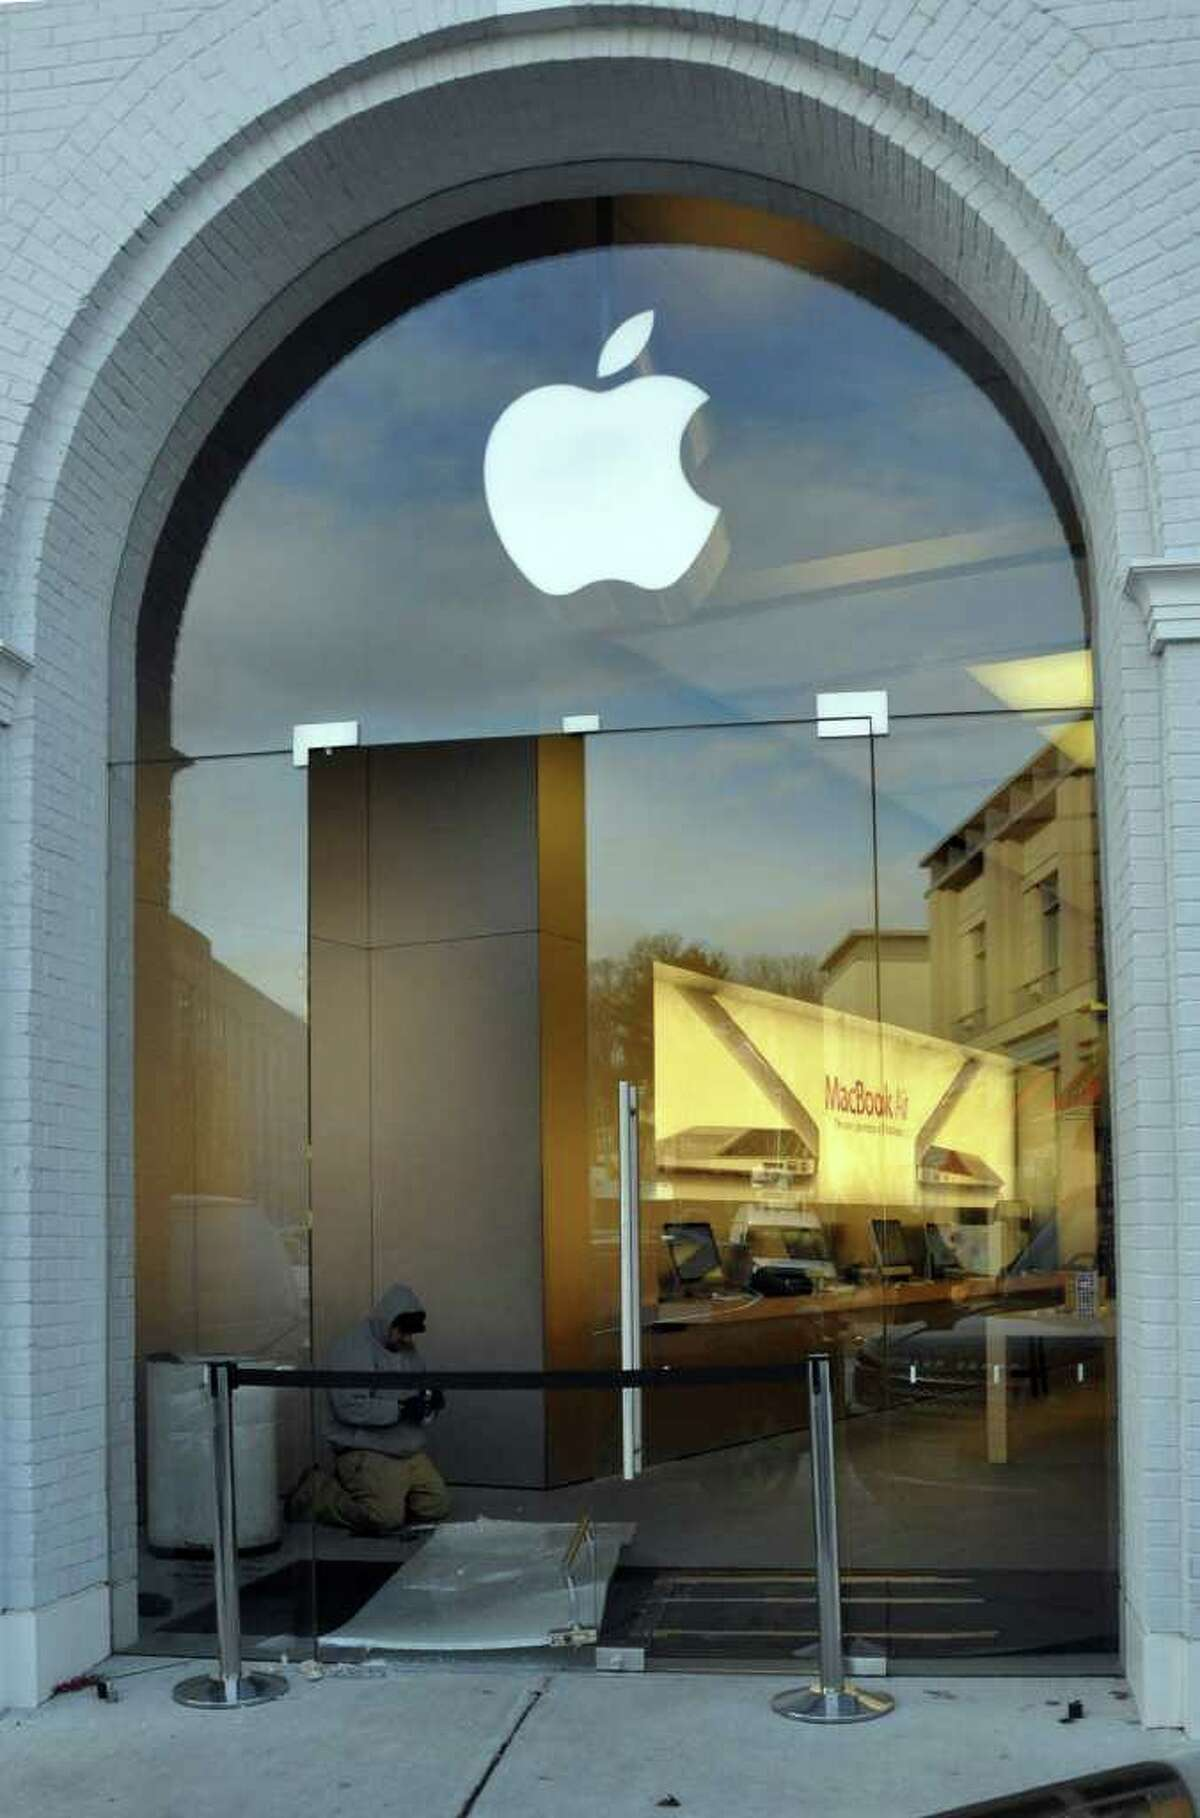 A man repairs the broken glass door at the Apple Store on Greenwich Avenue on Tuesday, Dec. 14, 2010.